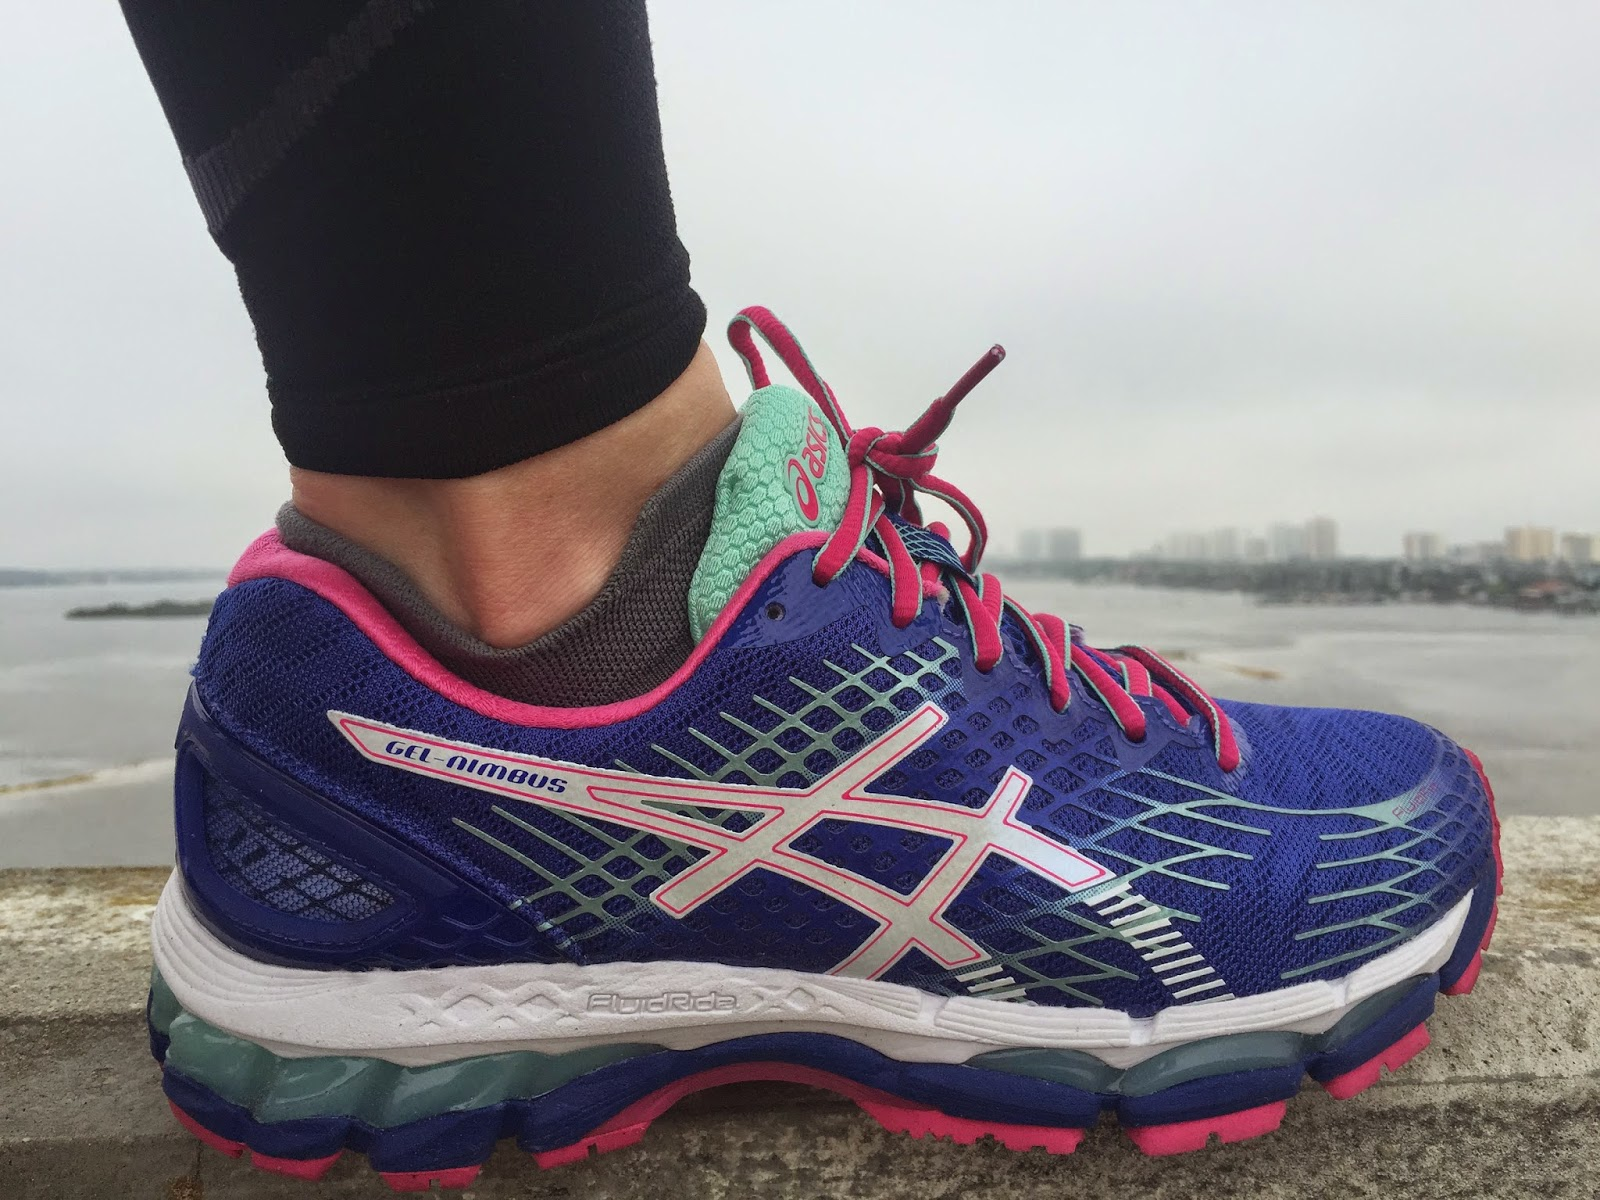 asics gel nimbus 17 sole review